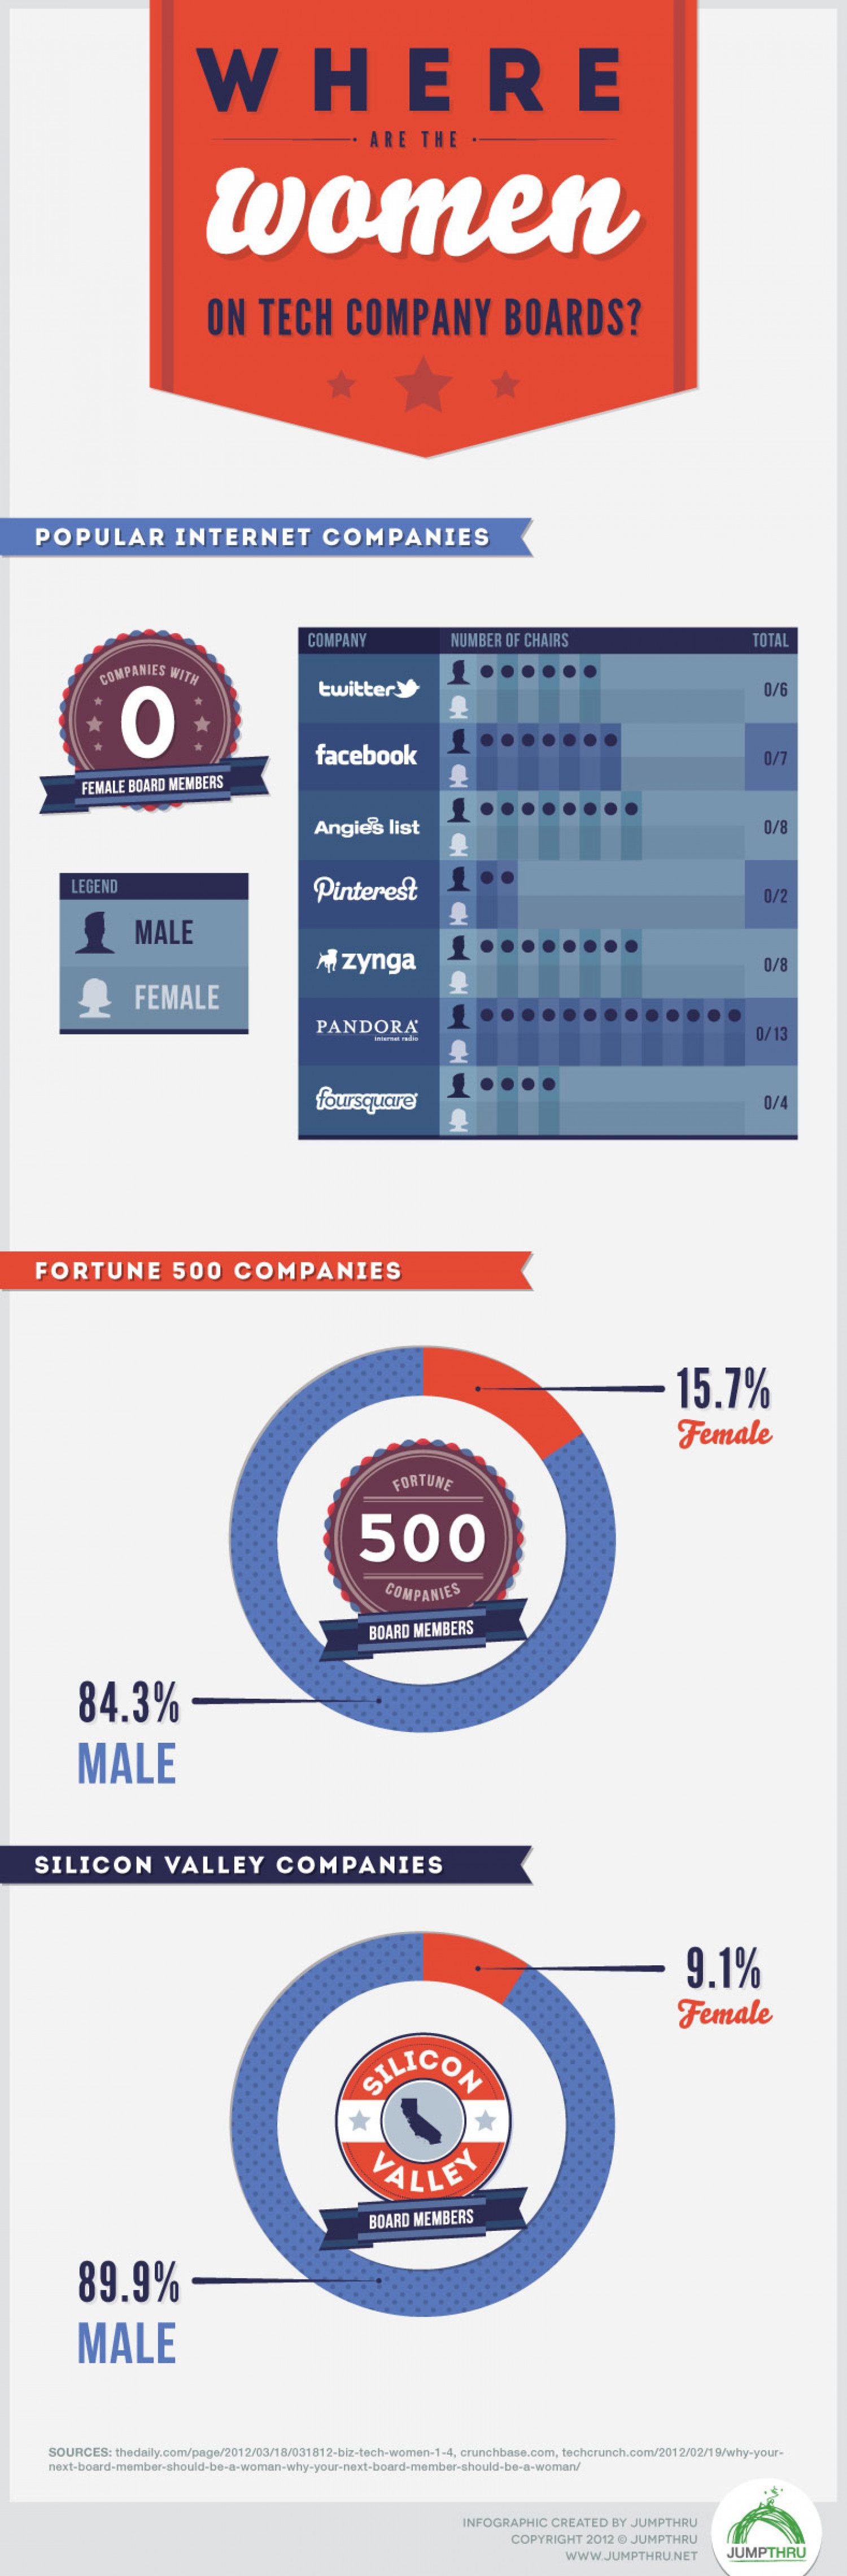 Women on Company Boards Infographic